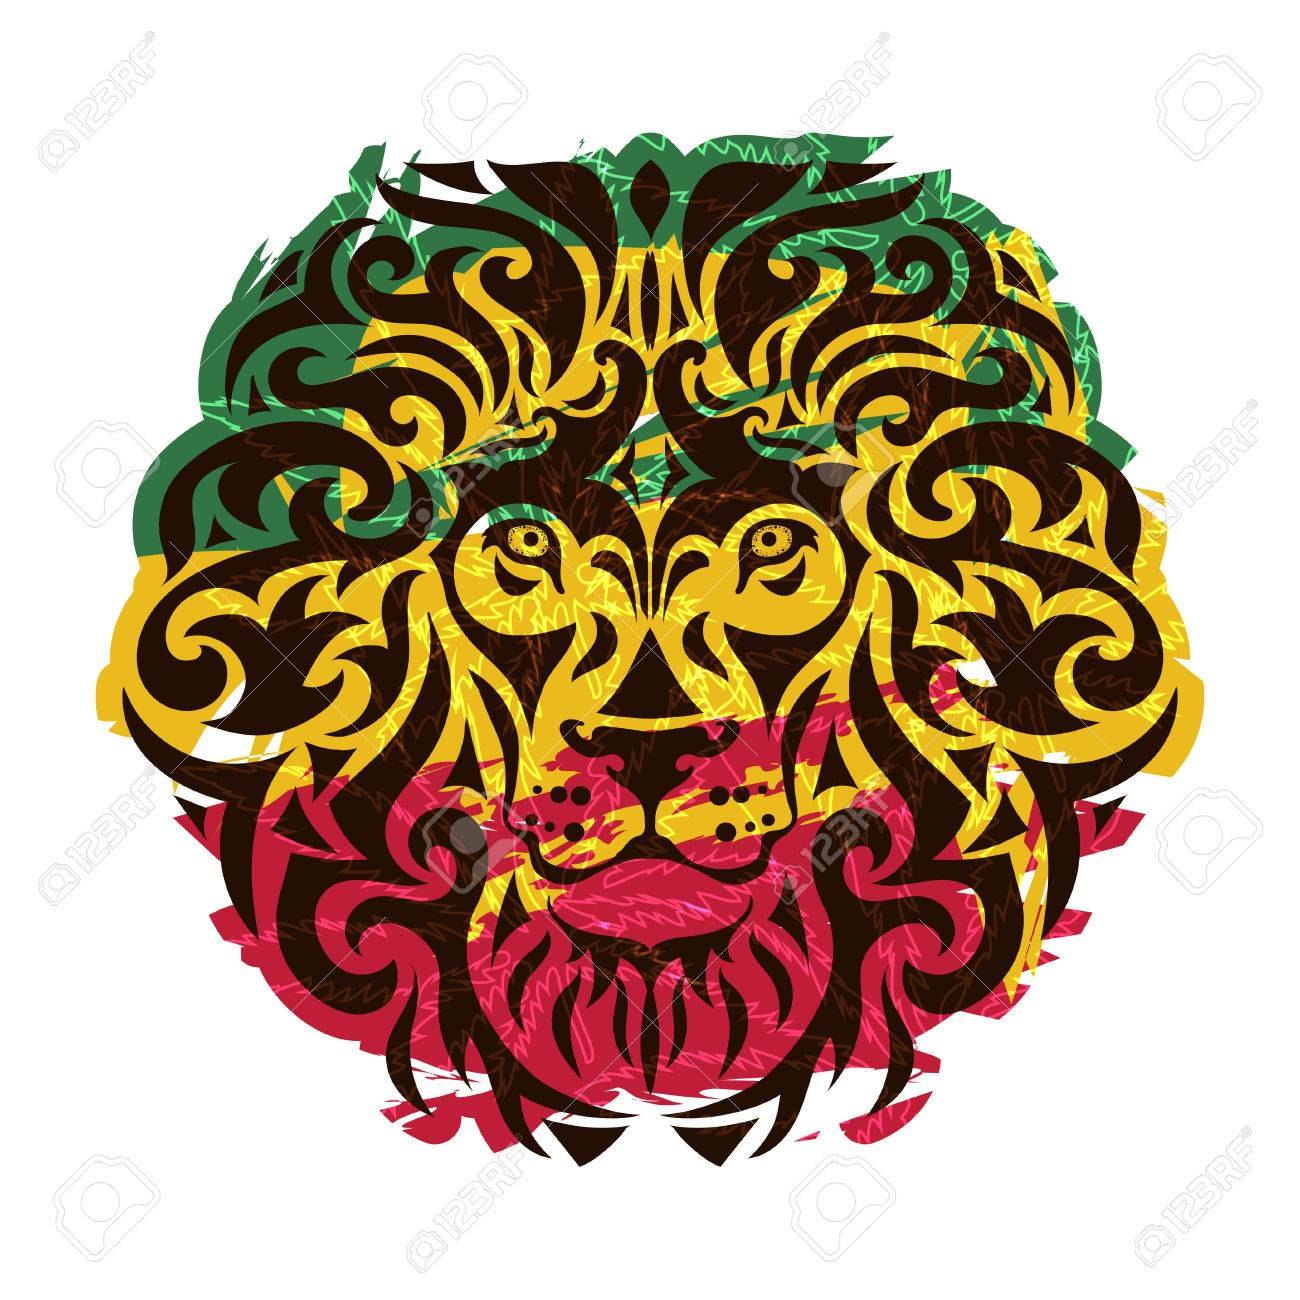 Rasta theme with lion head on a white background vector illustration stock vector